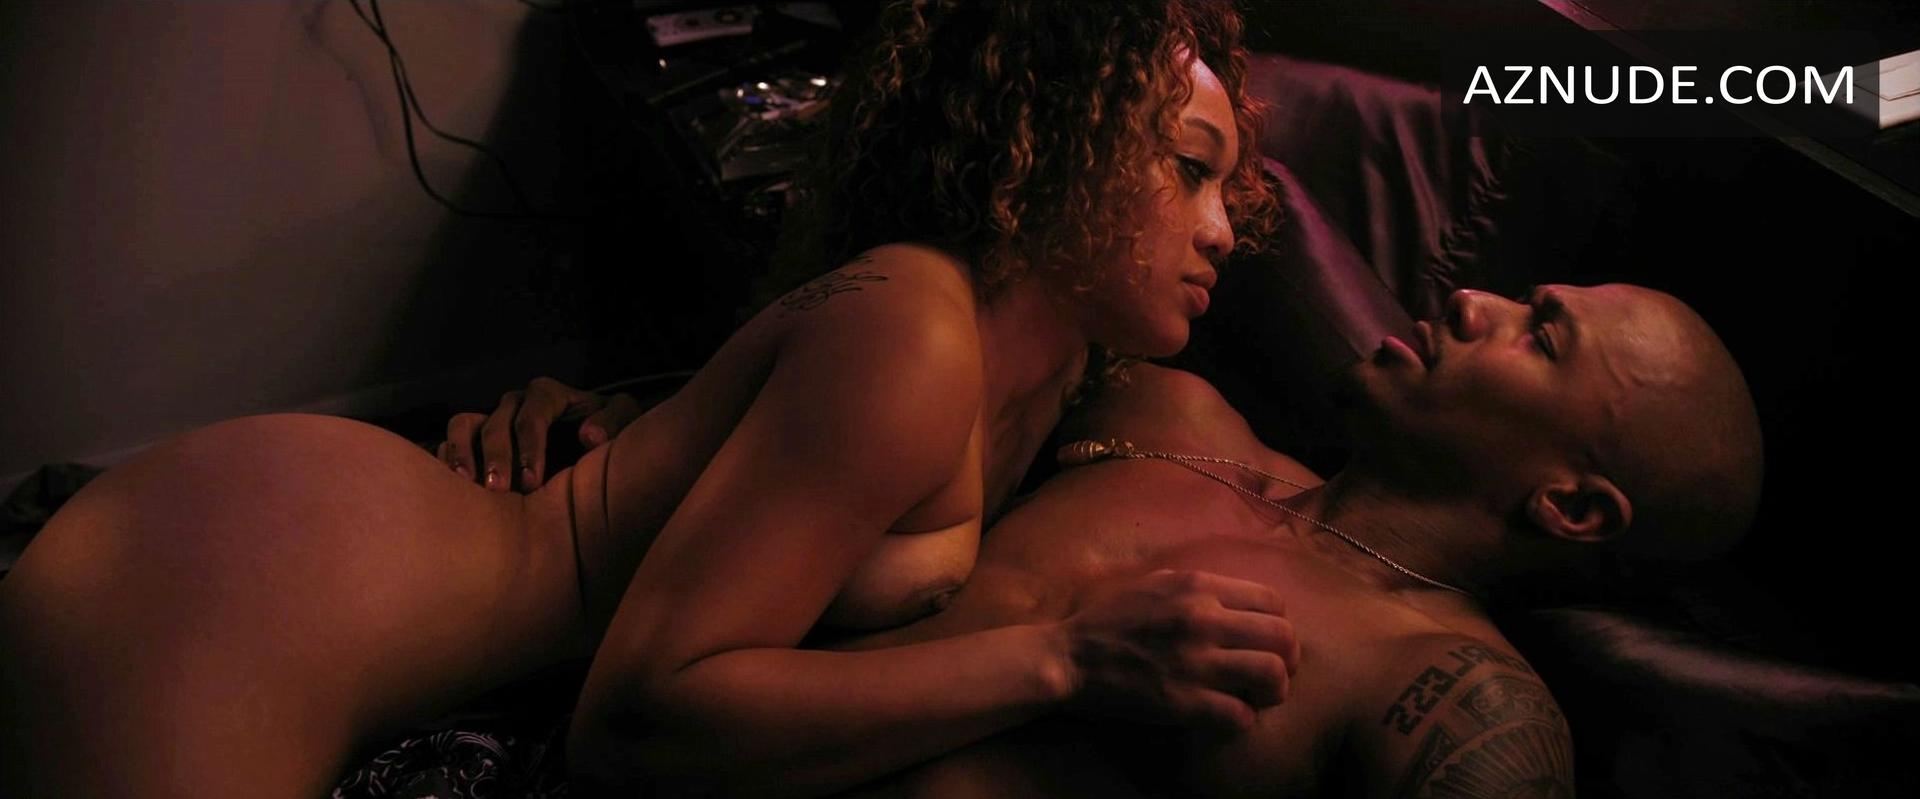 nick cannon s sex tape